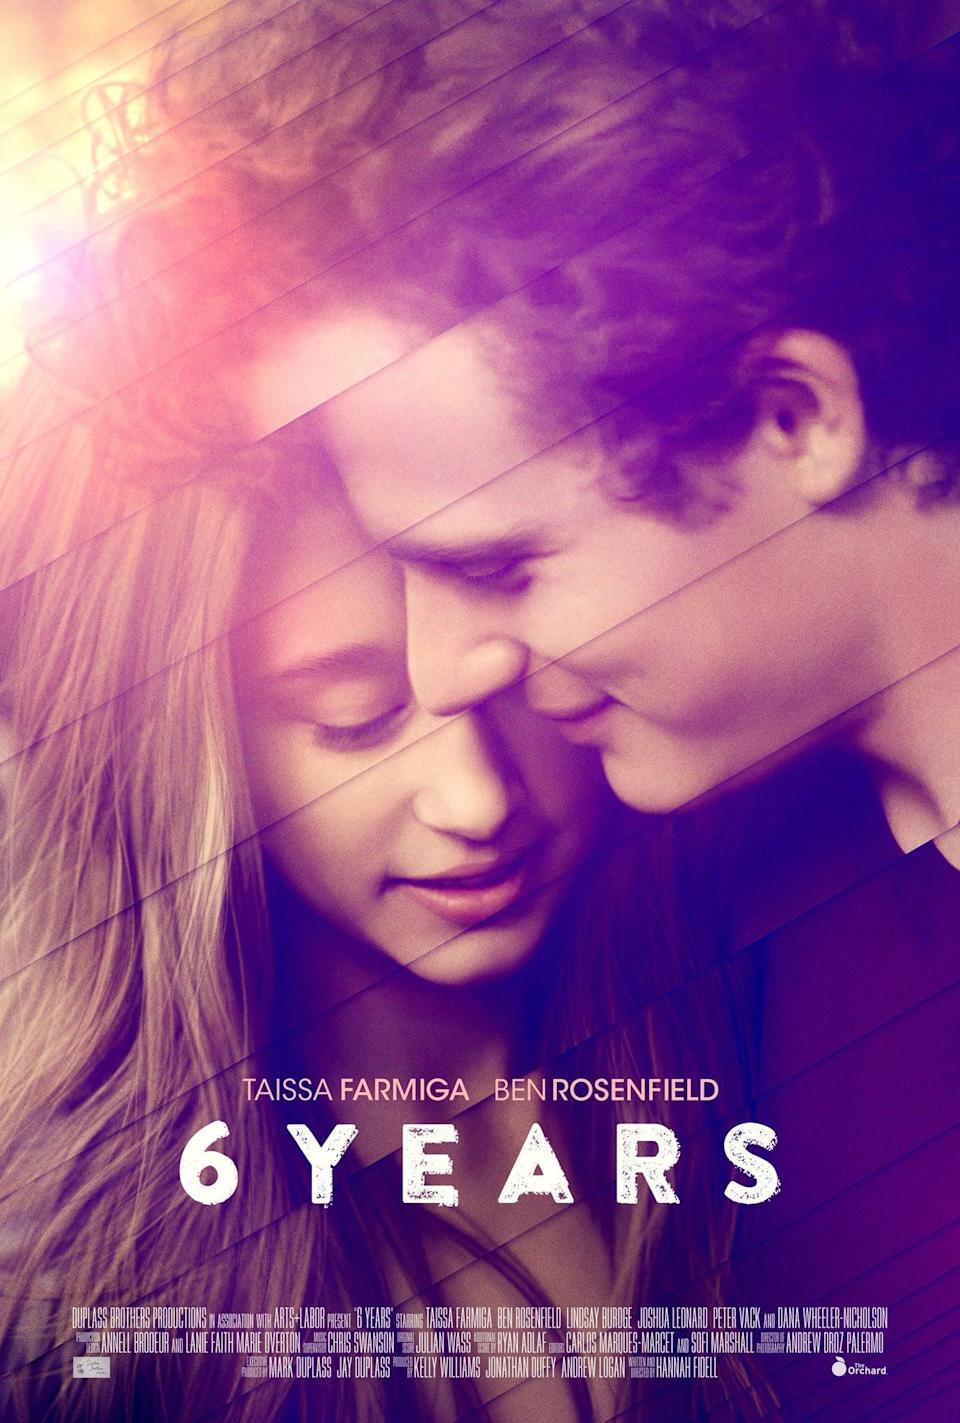 """<p>Produced by the Duplass brothers, <strong>6 Years</strong> stars Taissa Farmiga and Ben Rosenfield as a long-term couple whose relationship suddenly turns violent when faced with new challenges and obstacles. It's a heartbreaking look at the highs and lows of first love, and how it becomes all too easy to lose ourselves in our most meaningful relationships.</p> <p>Watch <a href=""""http://www.netflix.com/title/80045922"""" class=""""link rapid-noclick-resp"""" rel=""""nofollow noopener"""" target=""""_blank"""" data-ylk=""""slk:6 Years""""><strong>6 Years</strong></a> on Netflix now.</p>"""